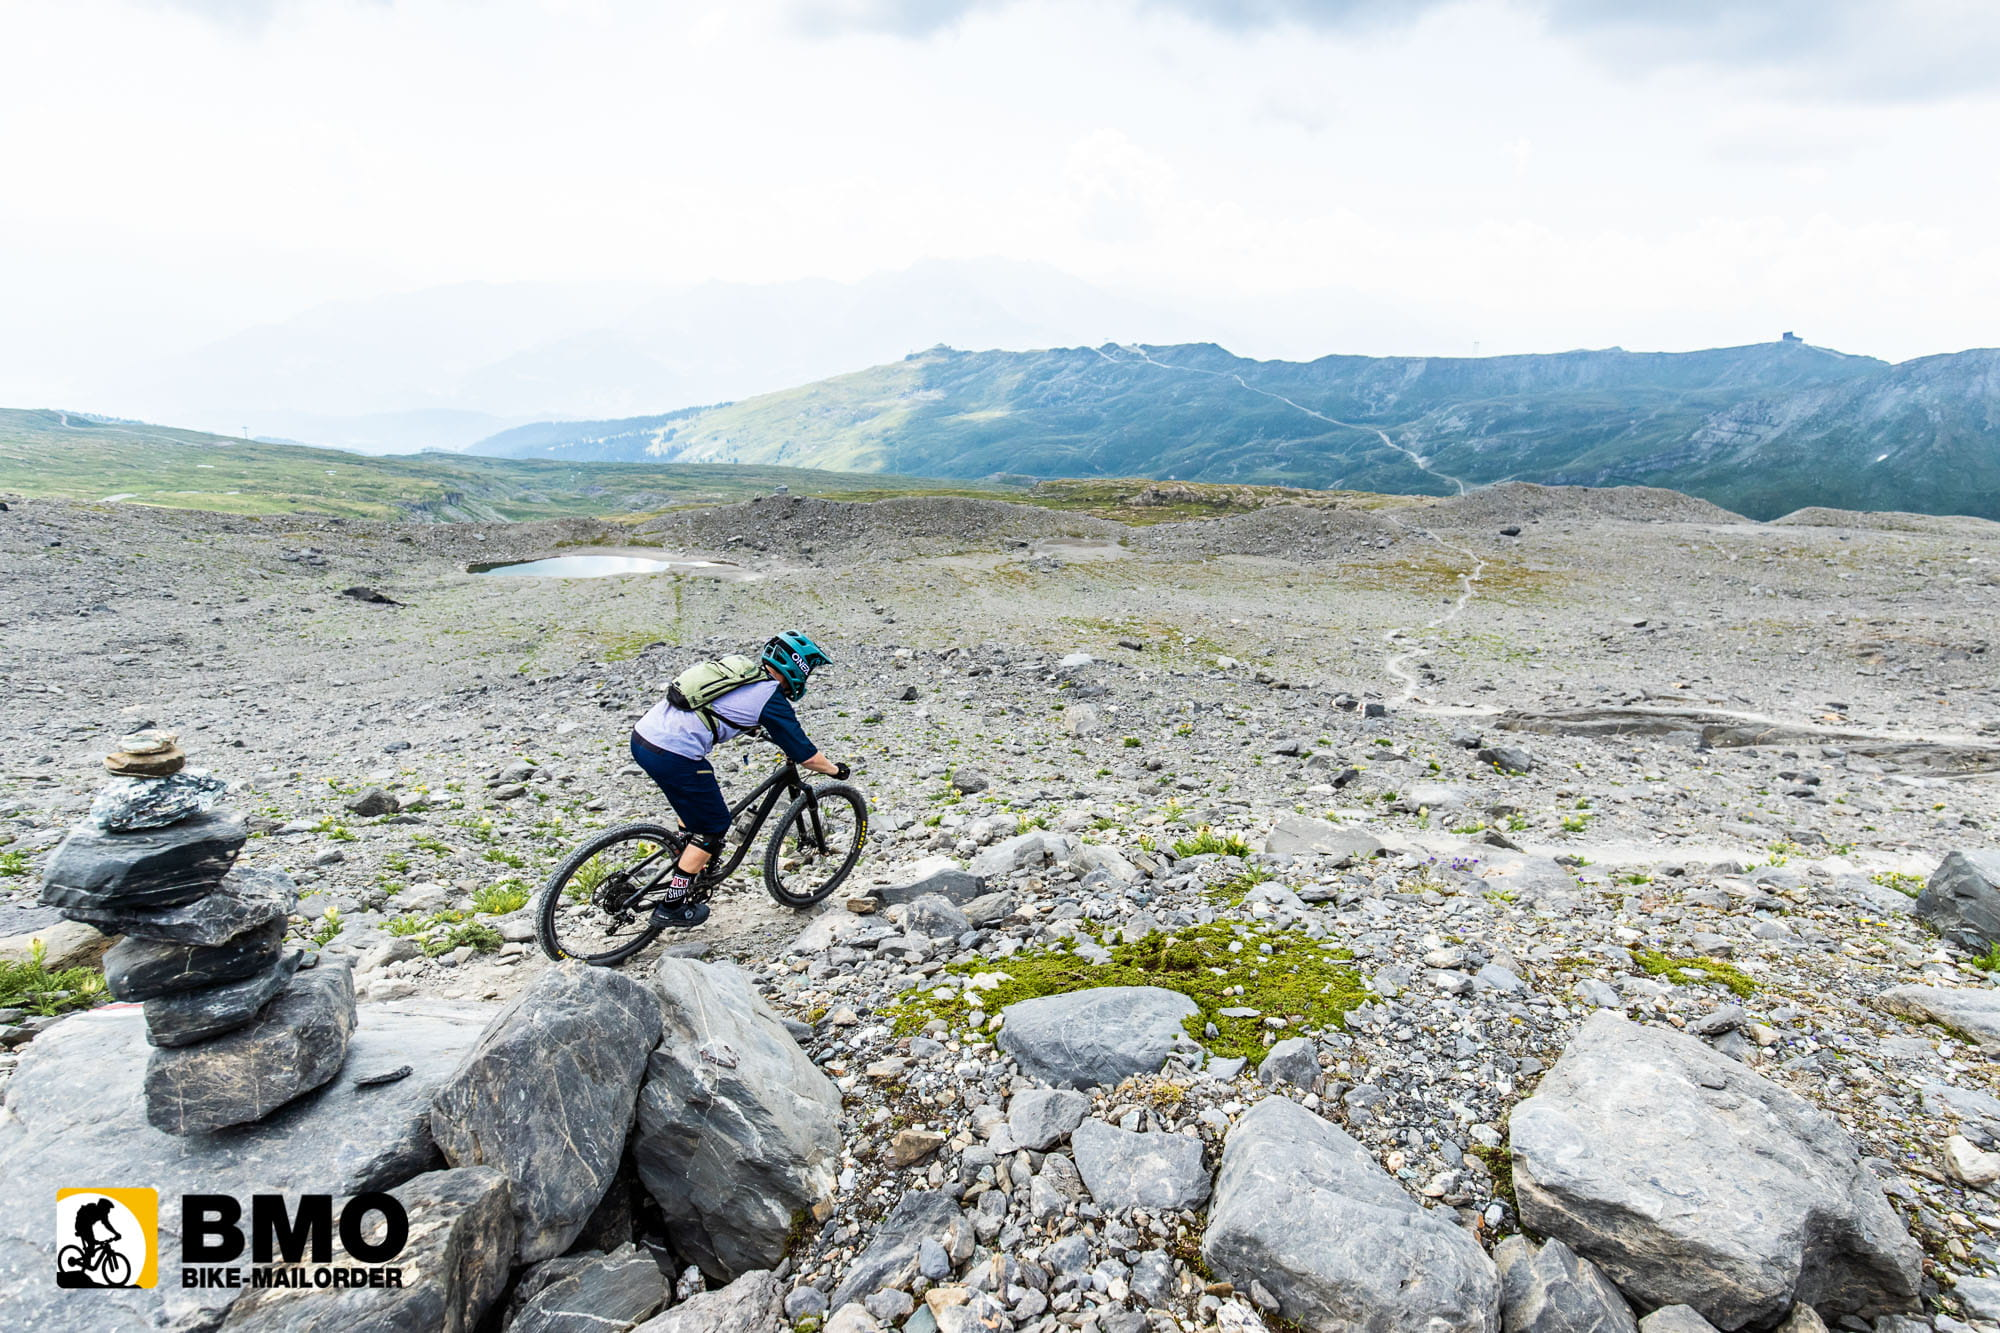 BMO_Home-of-Trails-Flims-Bike-Mailorder-7